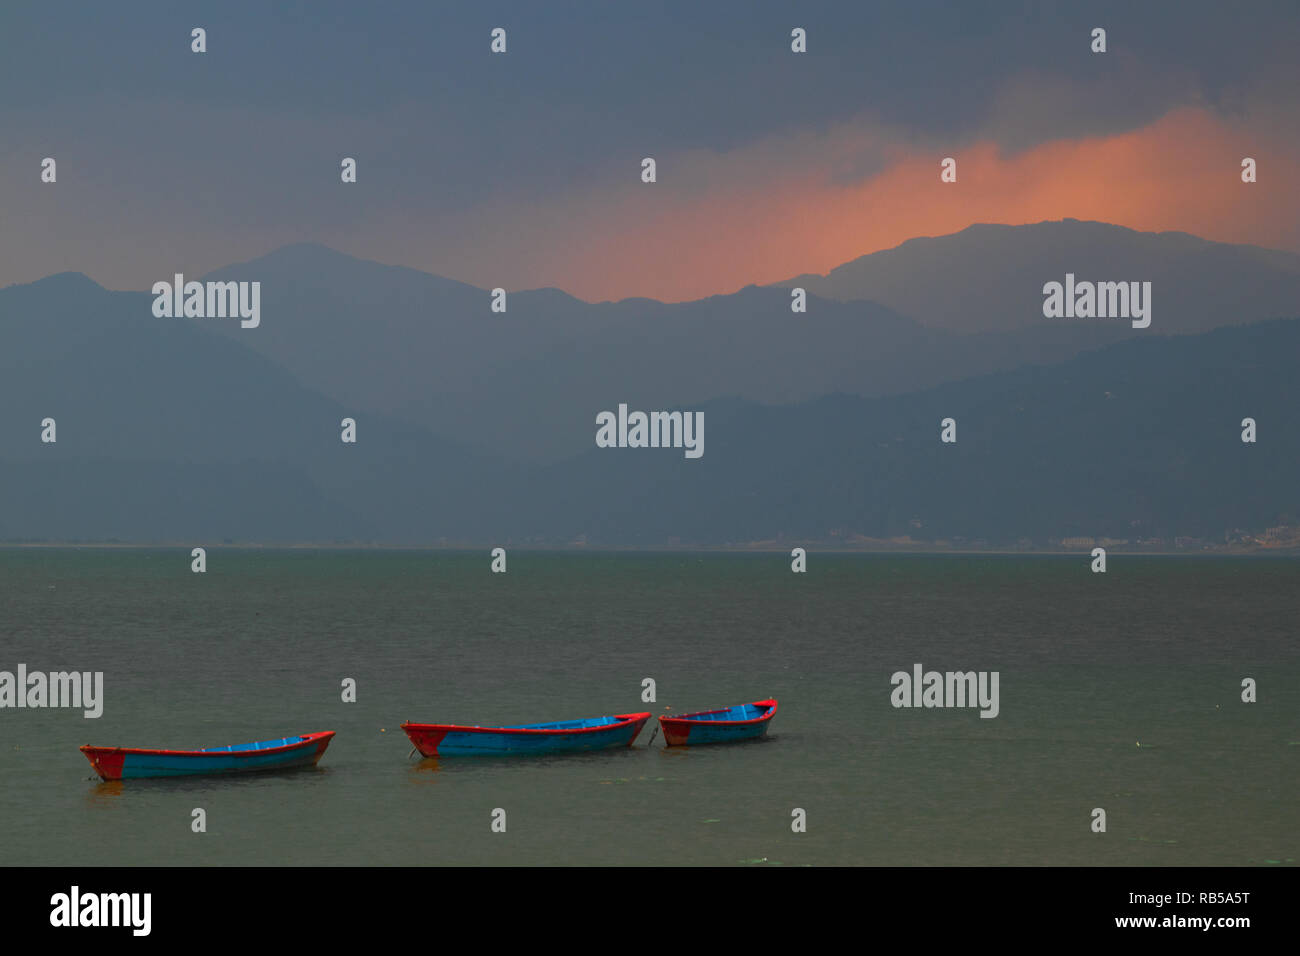 Colorful boats in Pokhara lake in Nepal during a sunset in a rainstorm Sky suddenly opening up and painting the mountains in the background with light - Stock Image